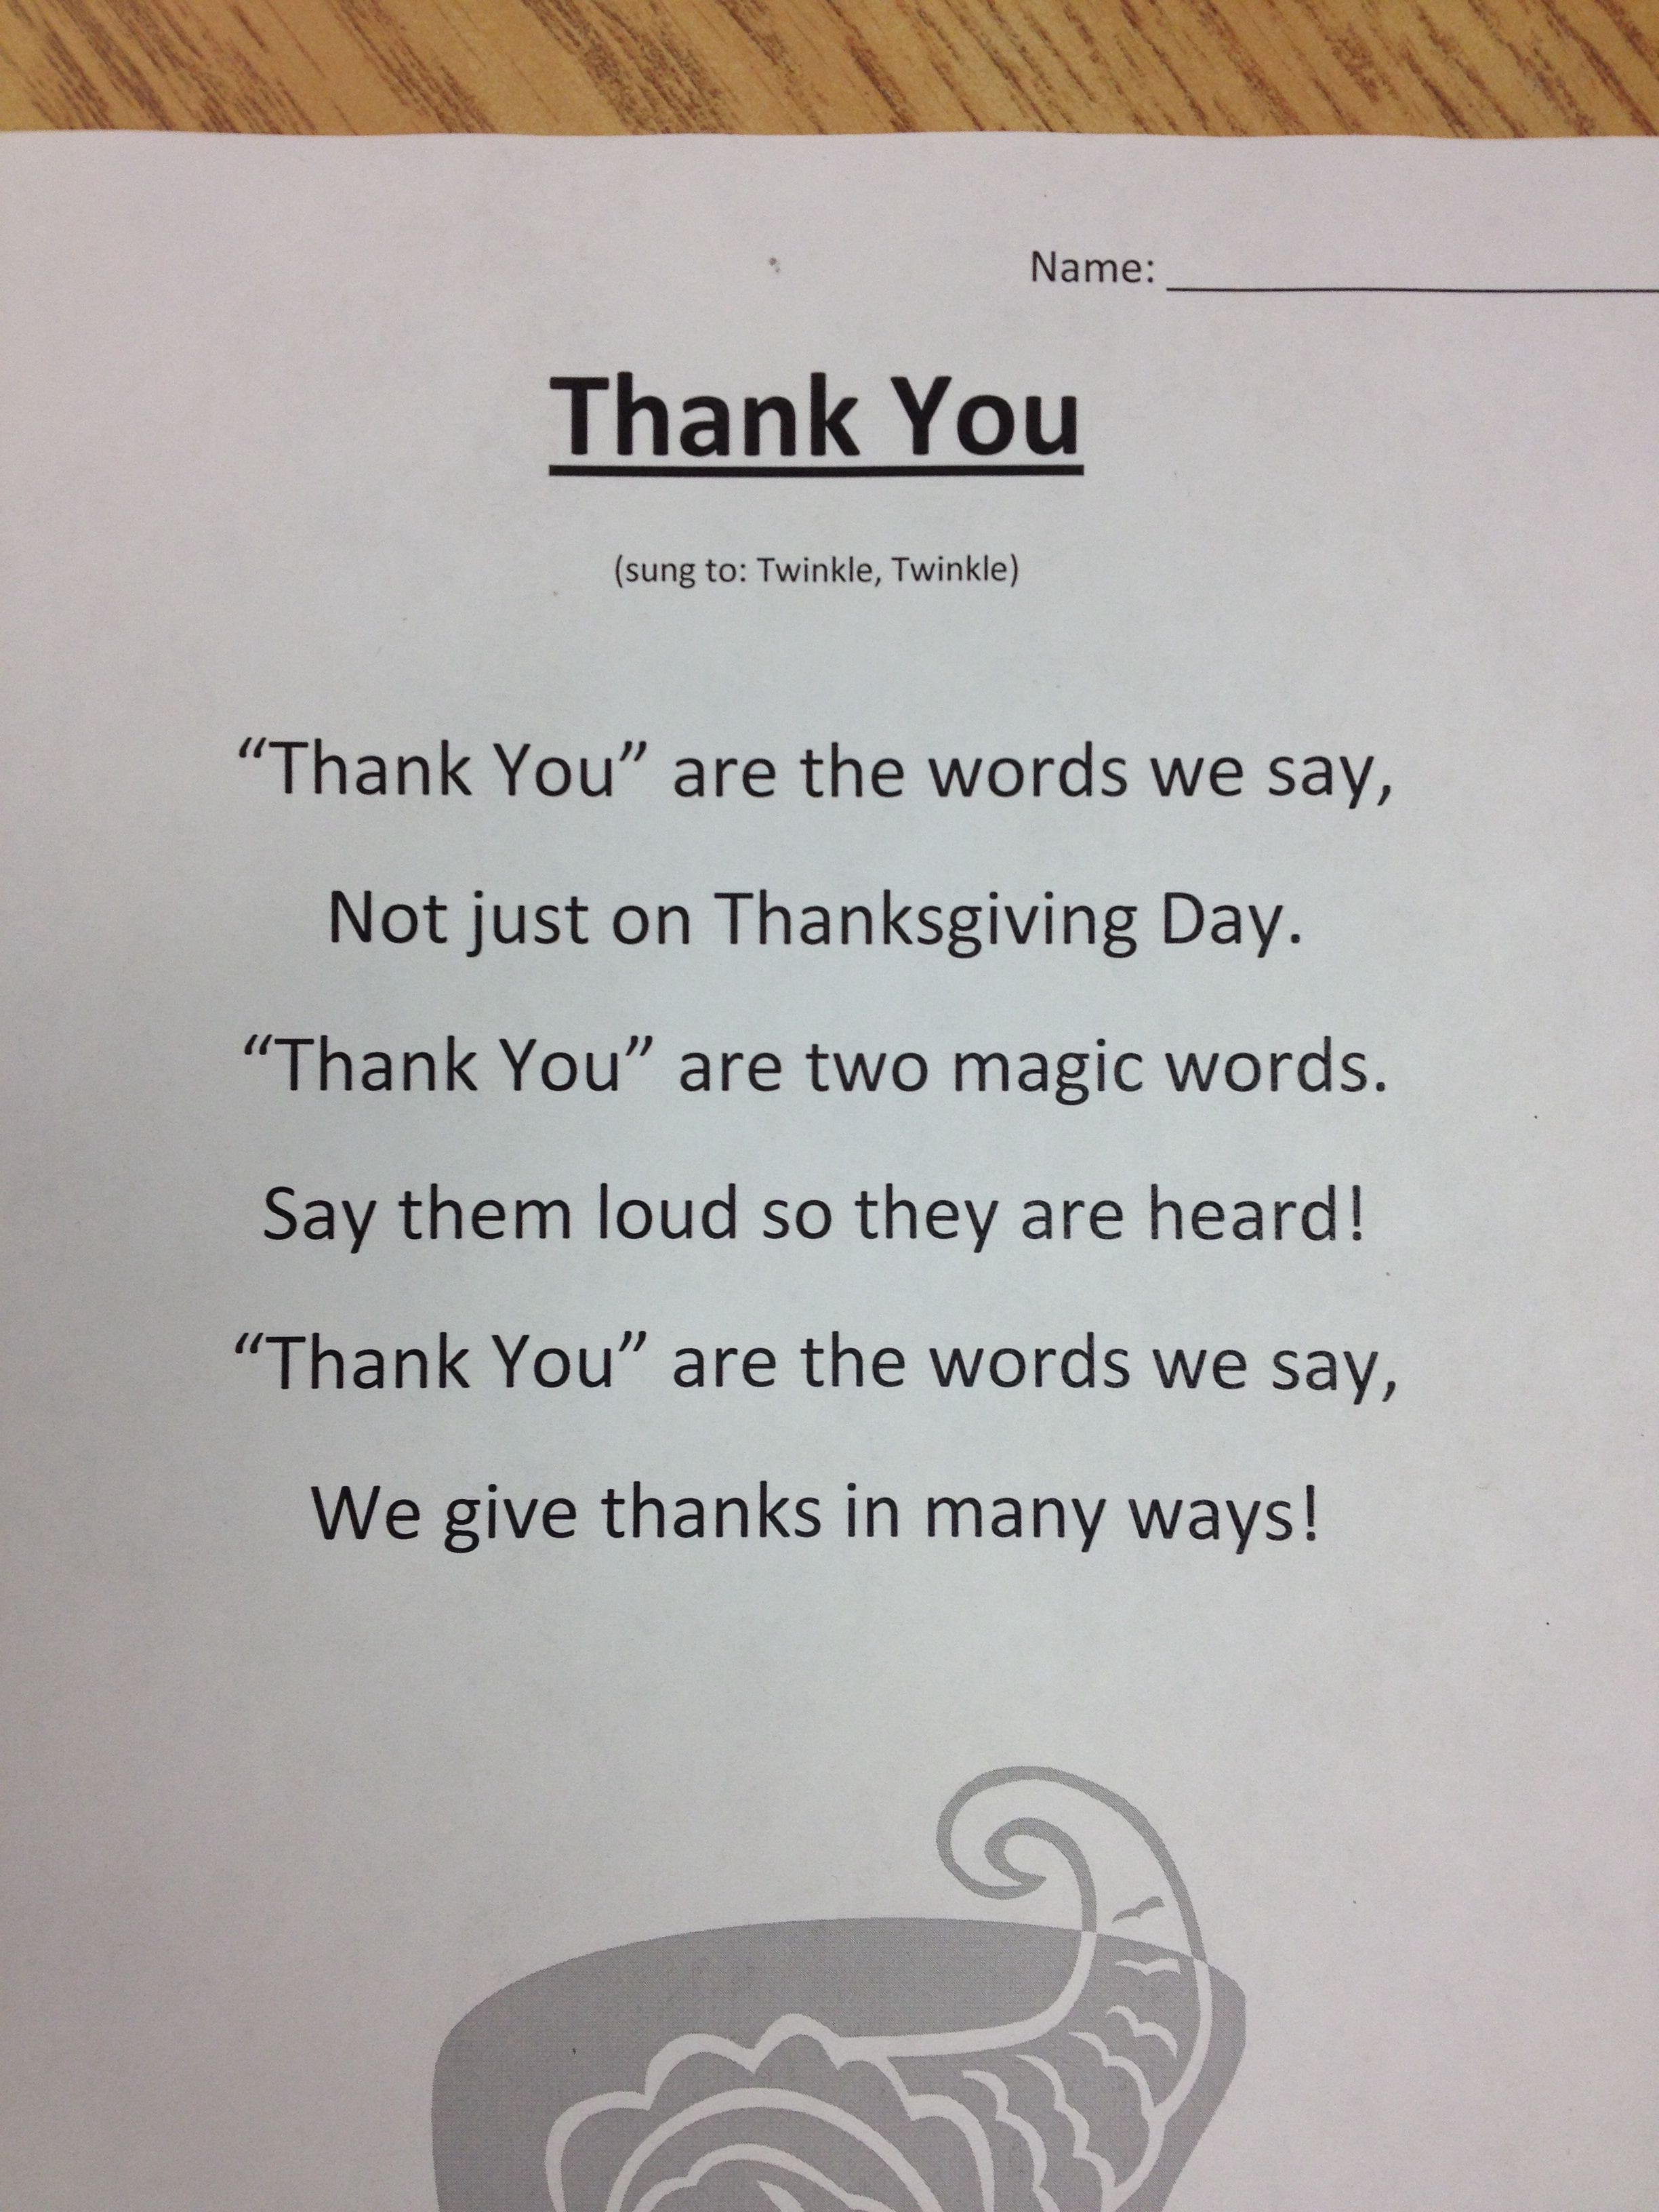 Latest  Thanksgiving Poems For Kids of the Month From Uploaded by user